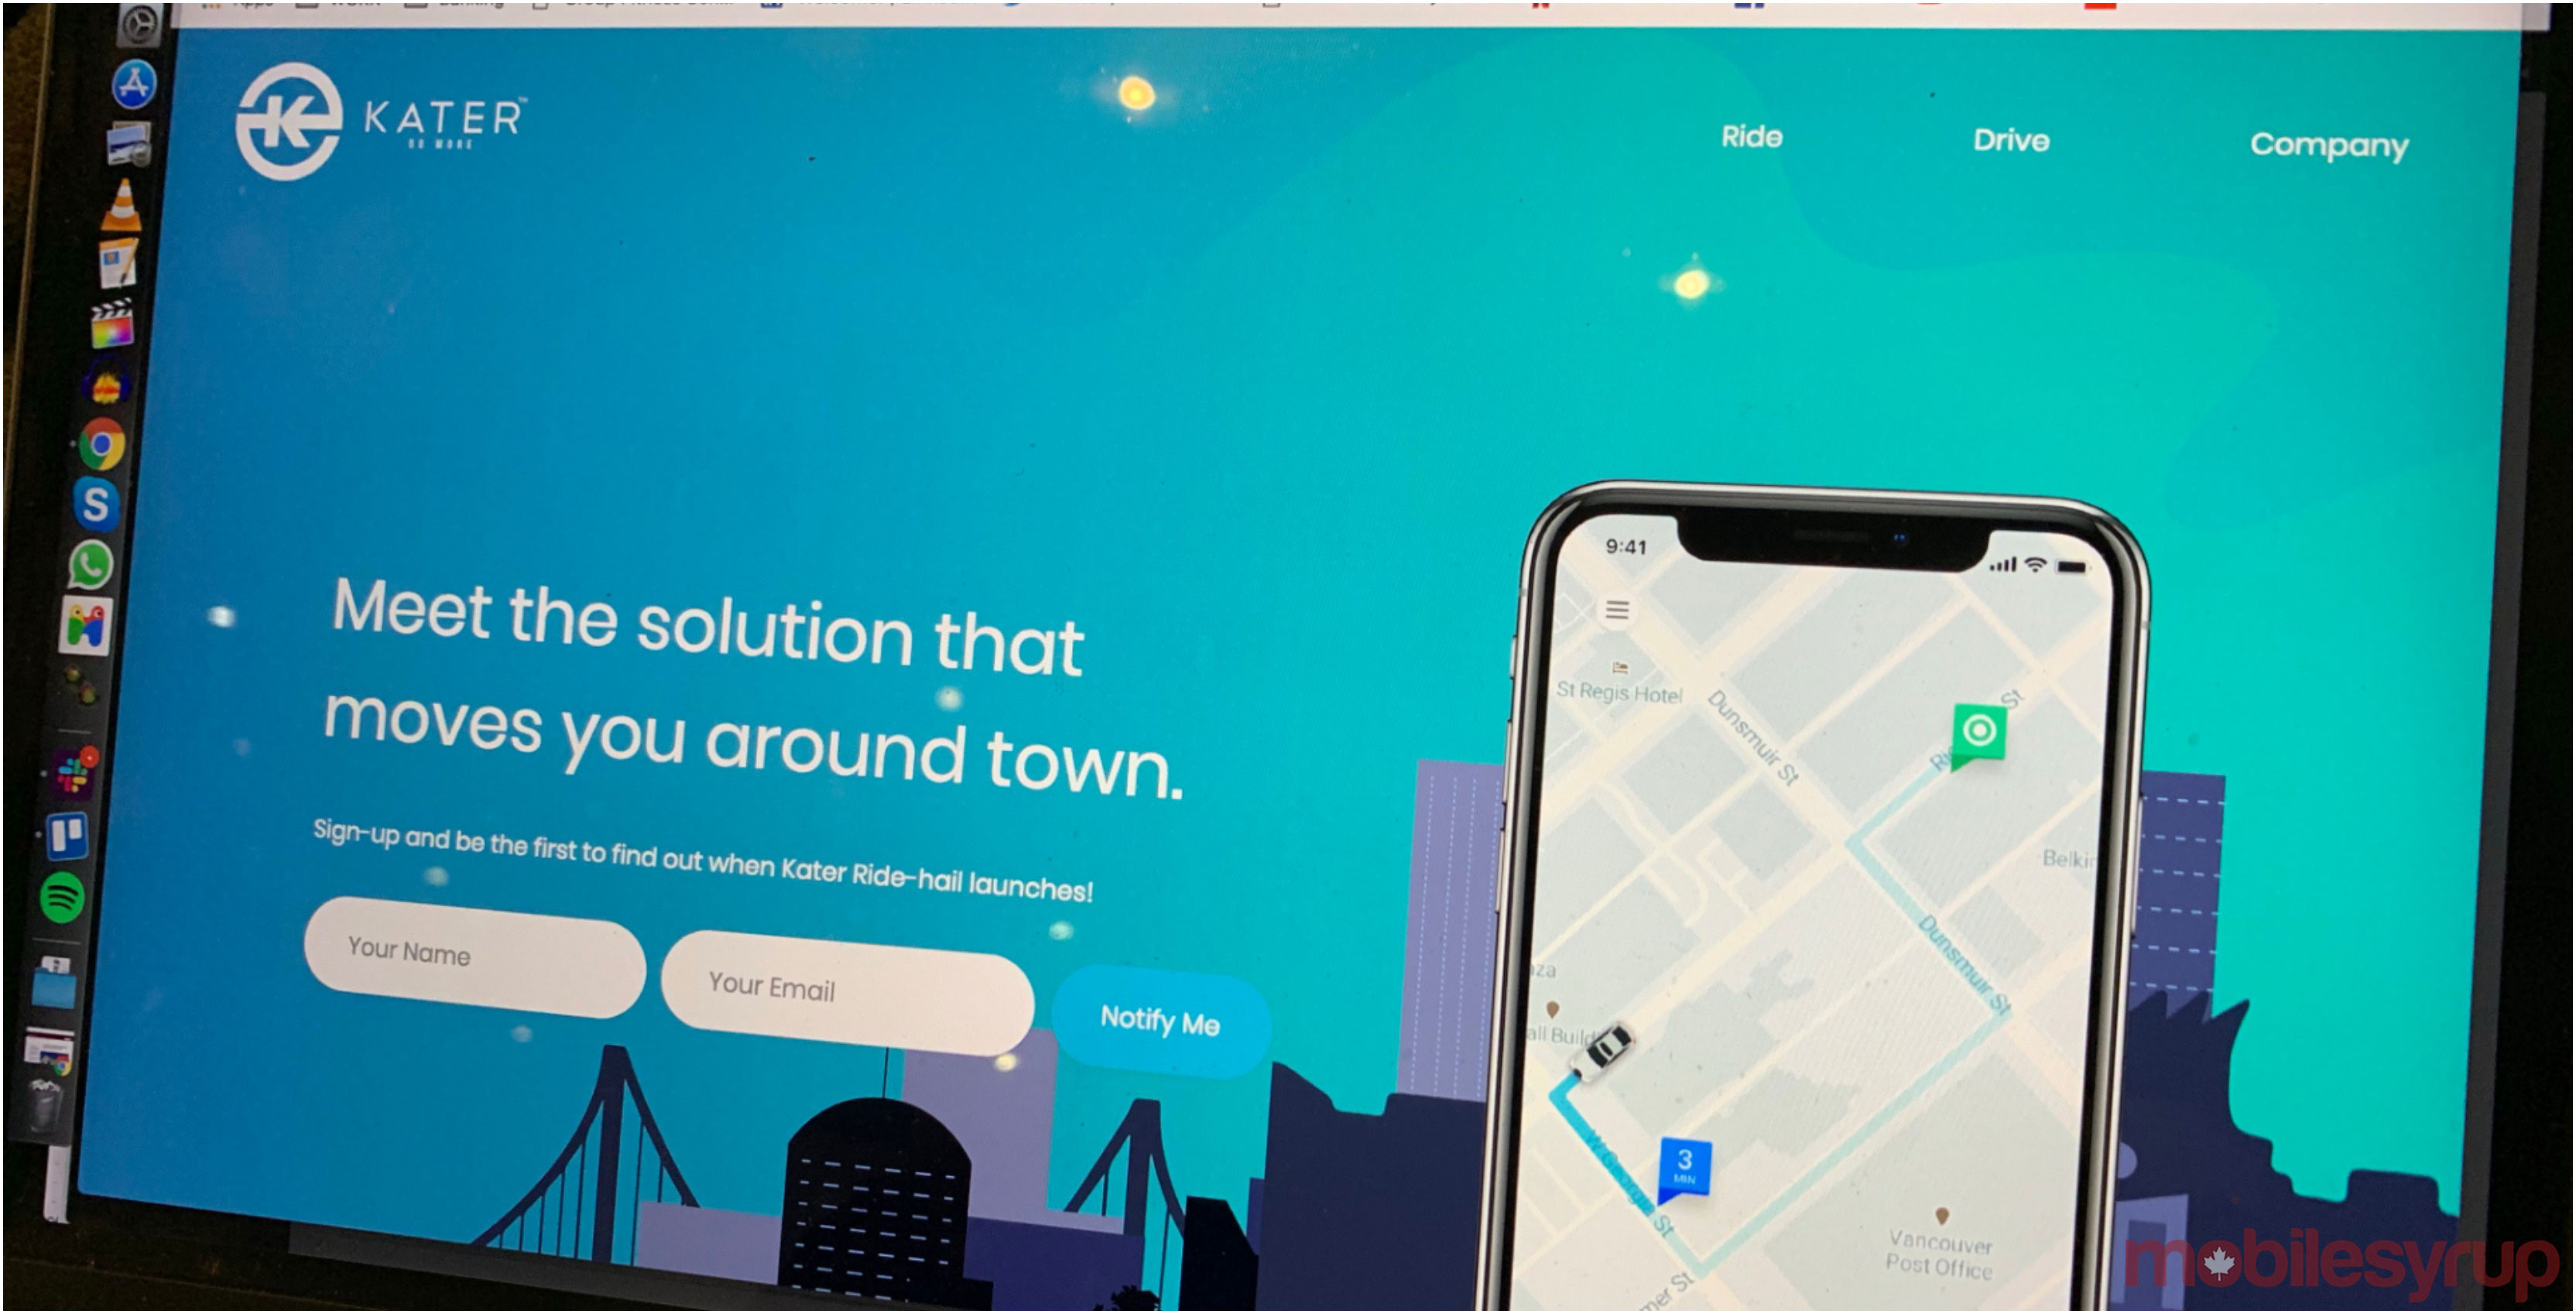 Ride-hailing service Kater launching in Vancouver this month, Burnaby soon after